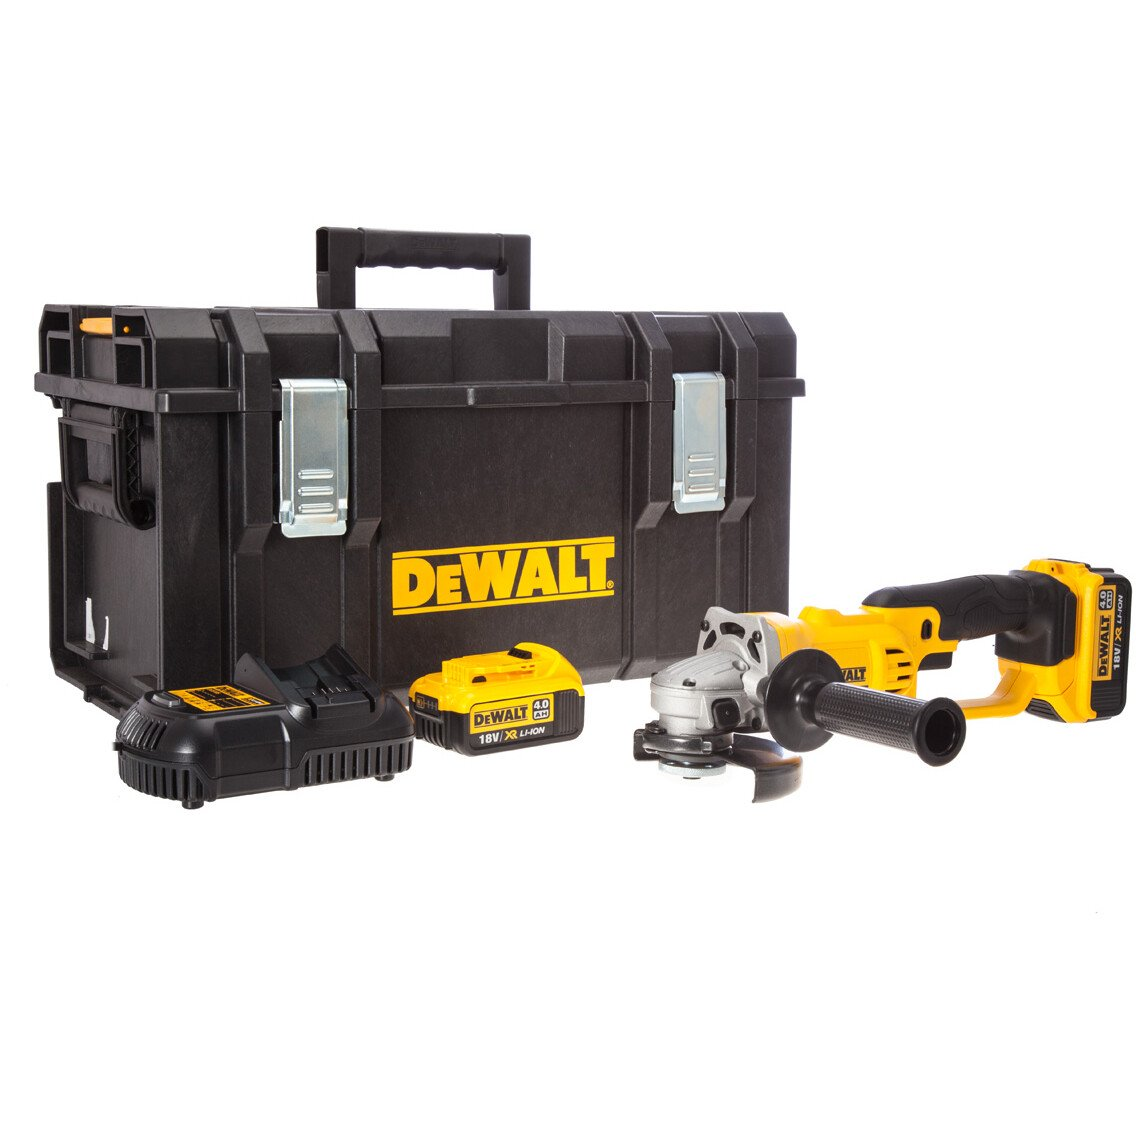 DeWalt DCG412M2 18v XR Li-ion Angle Grinder 125mm with 2 x 4.0Ah Batteries in Kitbox